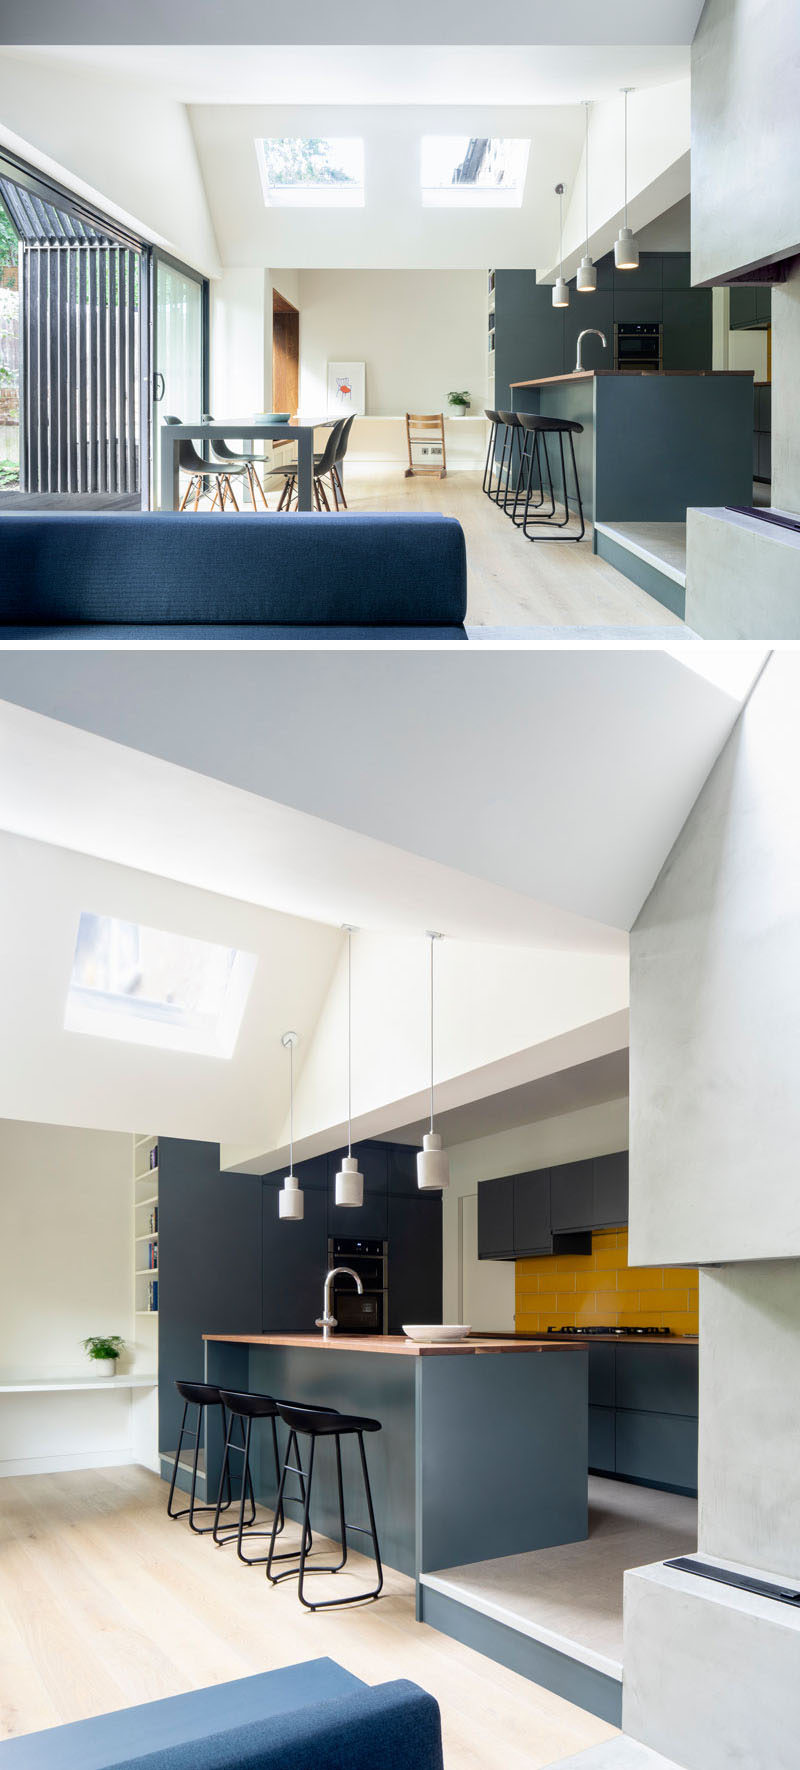 Skylights in the roof add natural light to the dining and kitchen area of this modern house extension. The kitchen is slightly raised, while a bright yellow backsplash adds a pop of colour. #Kitchen #Extension #DiningRoom #Skylights